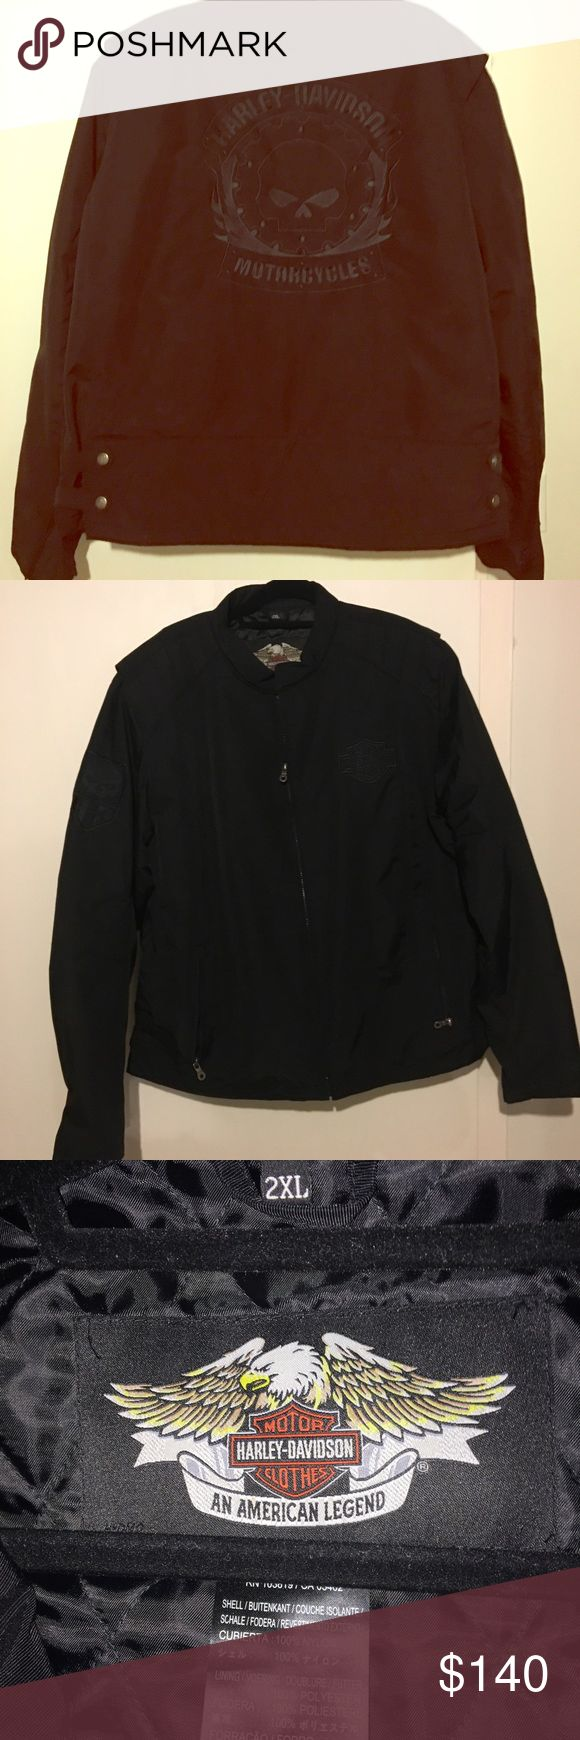 Harley Davidson Jacket- shell XXL Bought from Harley Davidson store 3 years ago . No receipt but in mint condition only worn a few times. Bought for 190$ selling $140 Harley-Davidson Jackets & Coats Performance Jackets